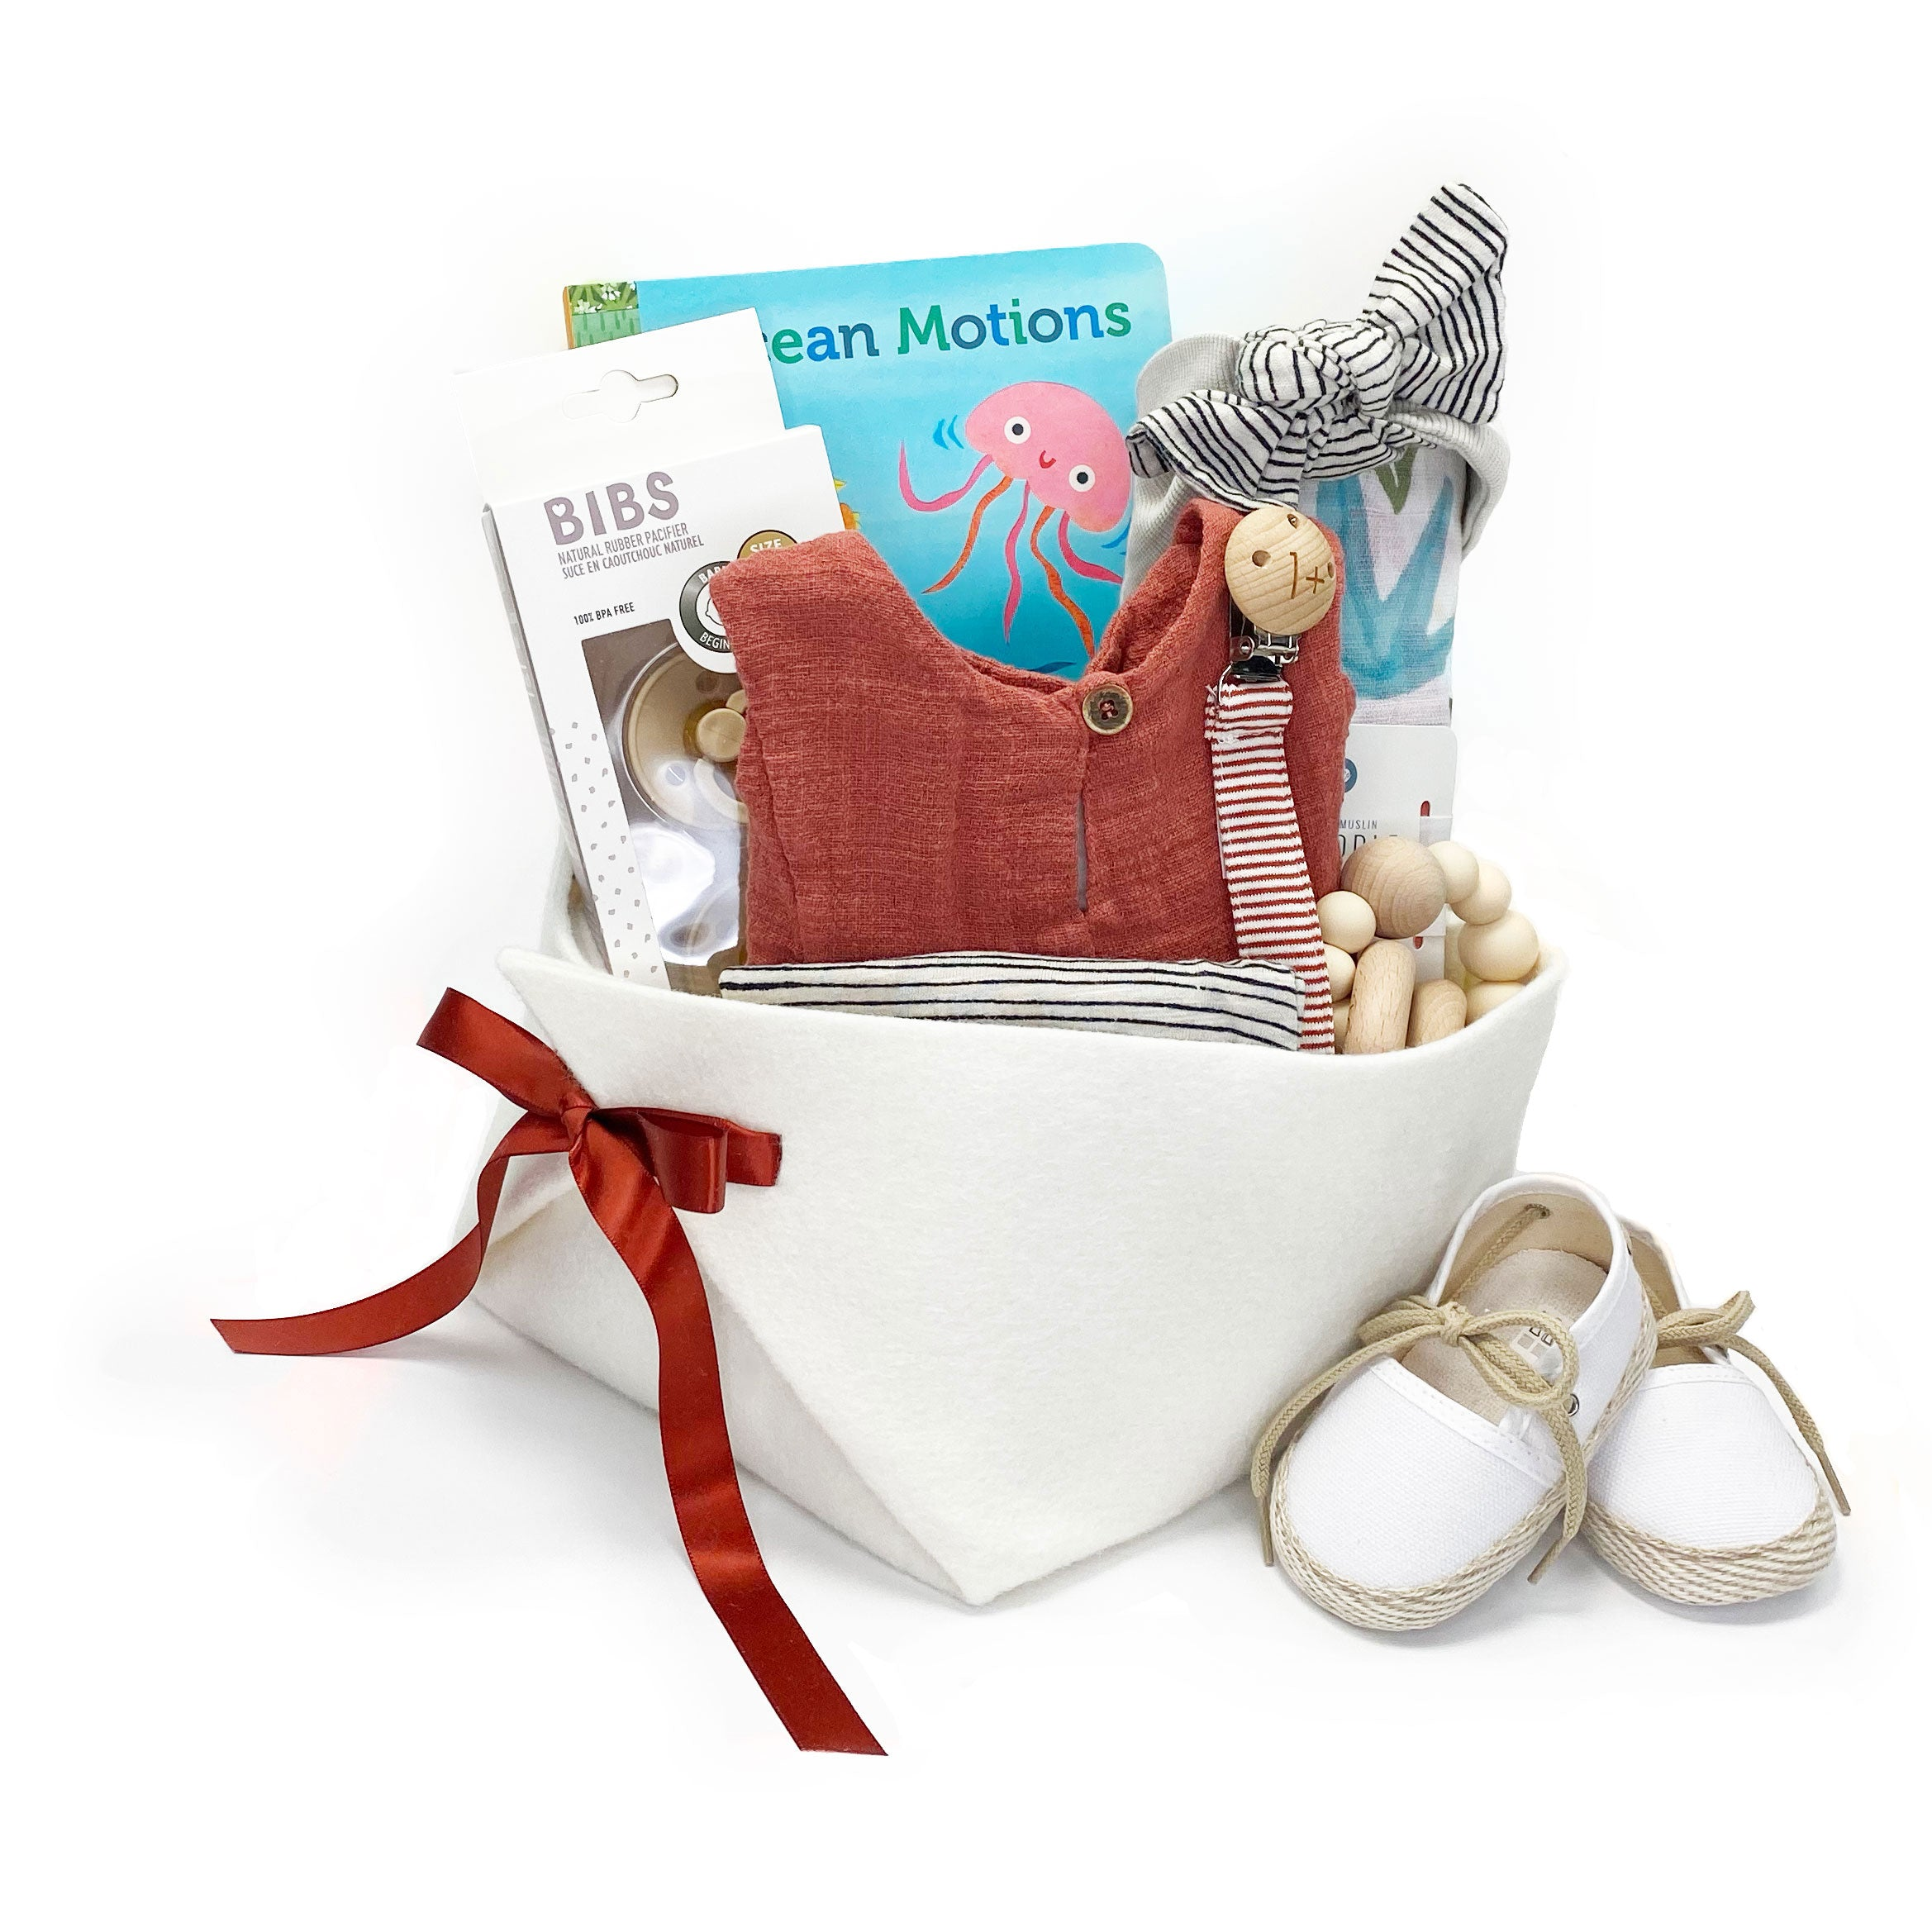 Luxury Baby Gift Basket featuring 1+ in the Family, great Baby Shower Gift Idea